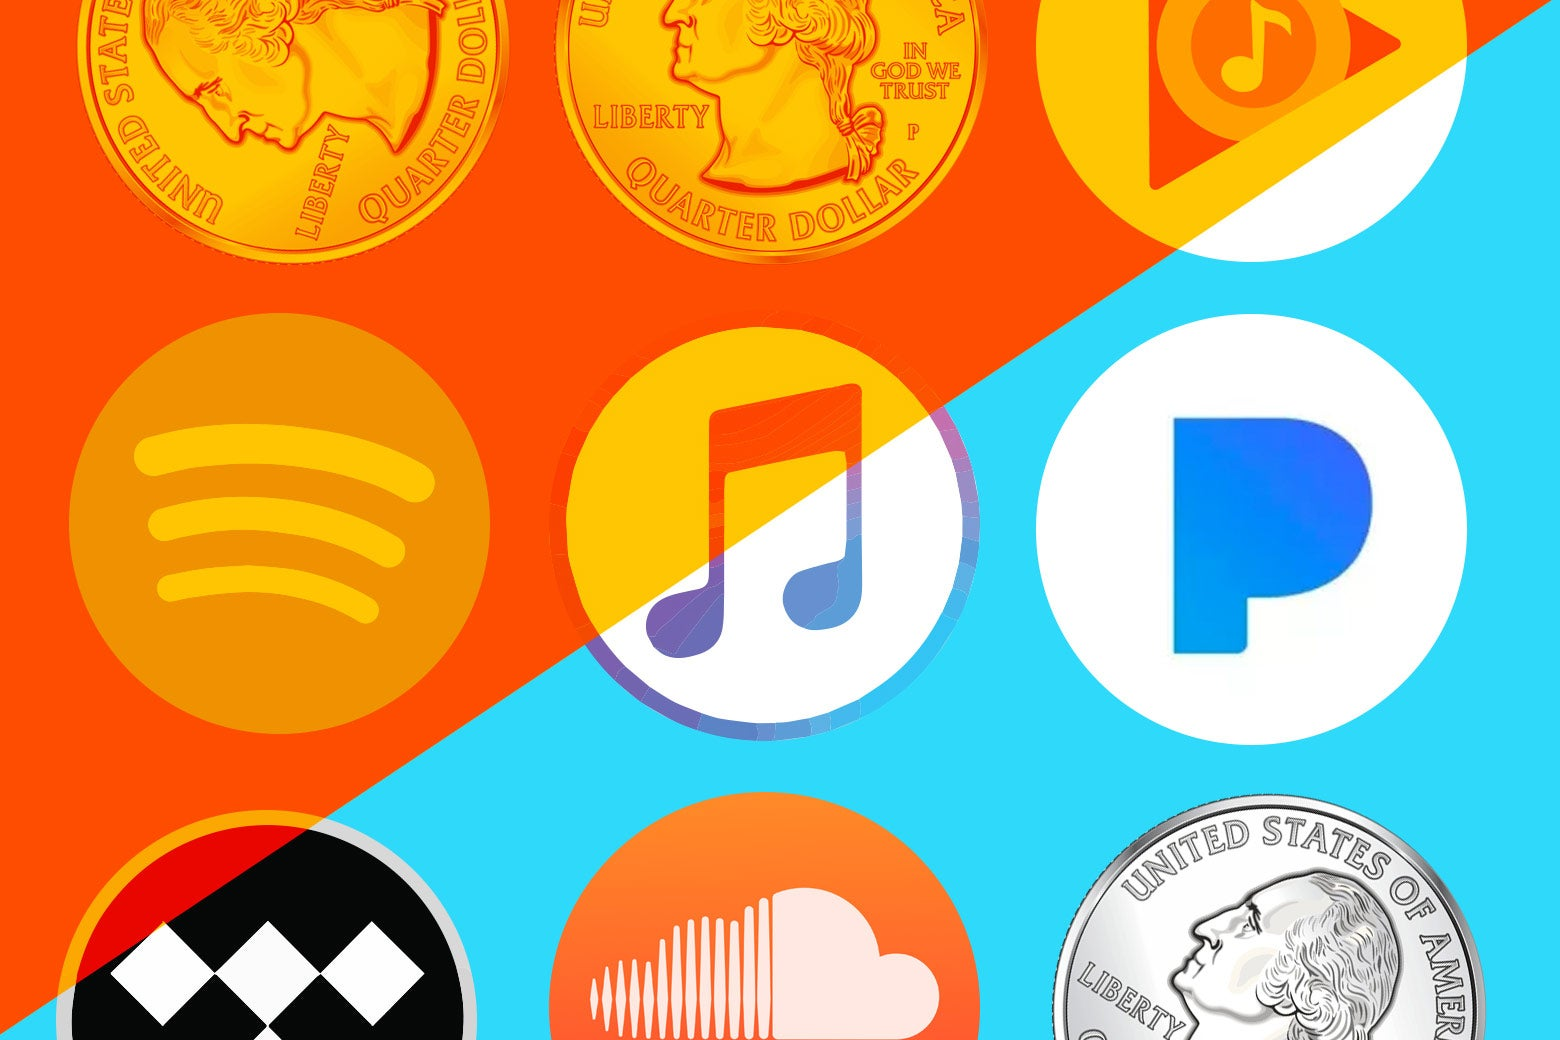 Photo illustration: The logos for various streaming services, including Spotify and SoundCloud, and quarters, with the background stylized in the If Then color scheme.